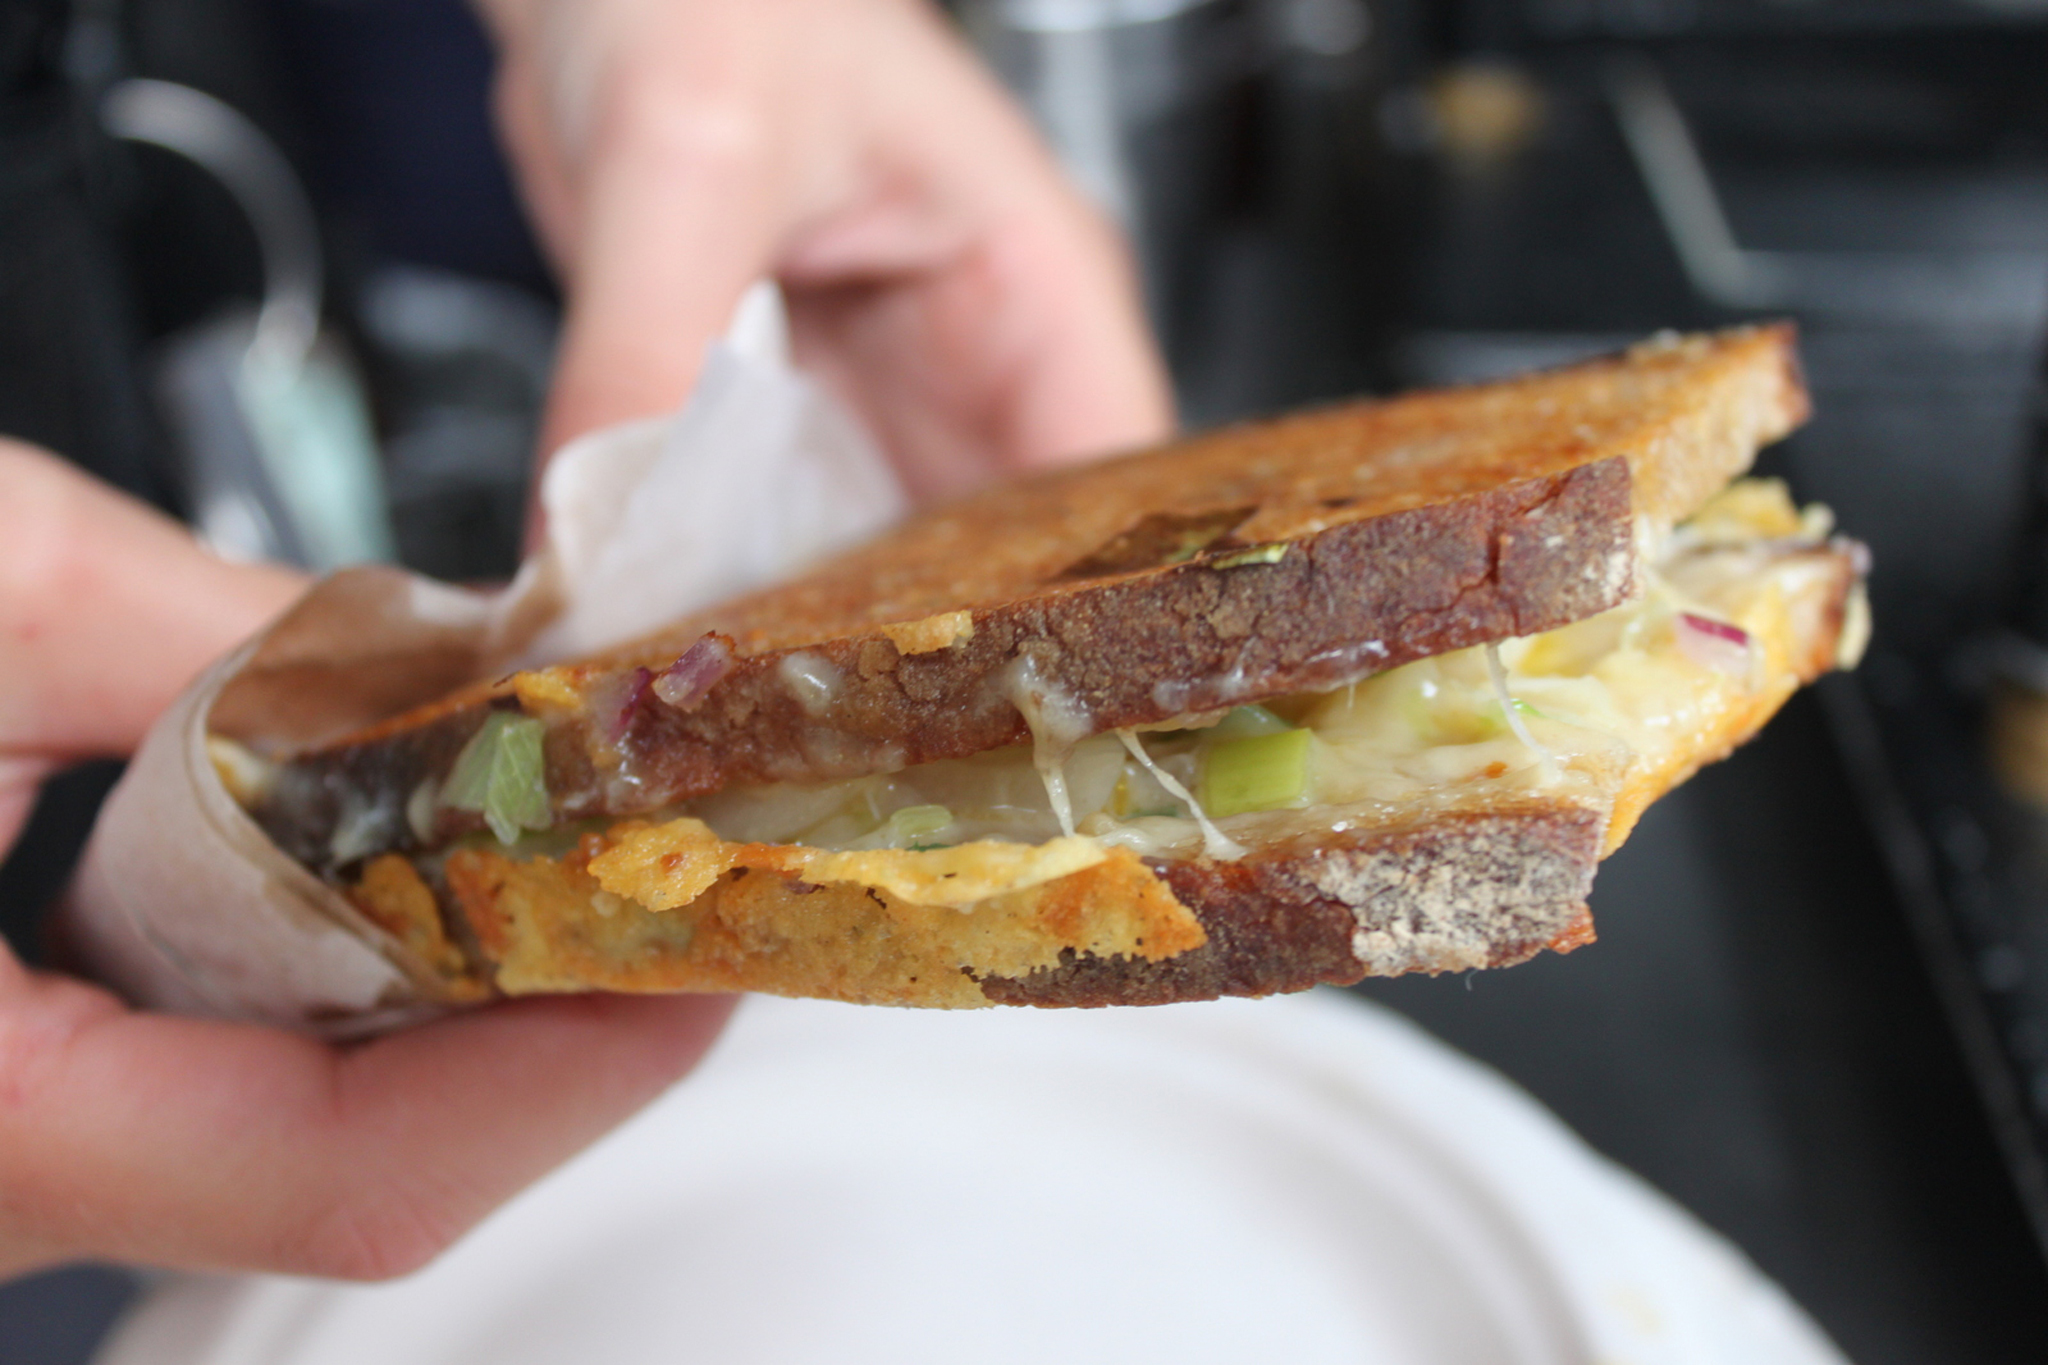 Toasted cheese sandwich at Kappacasein, Borough Market